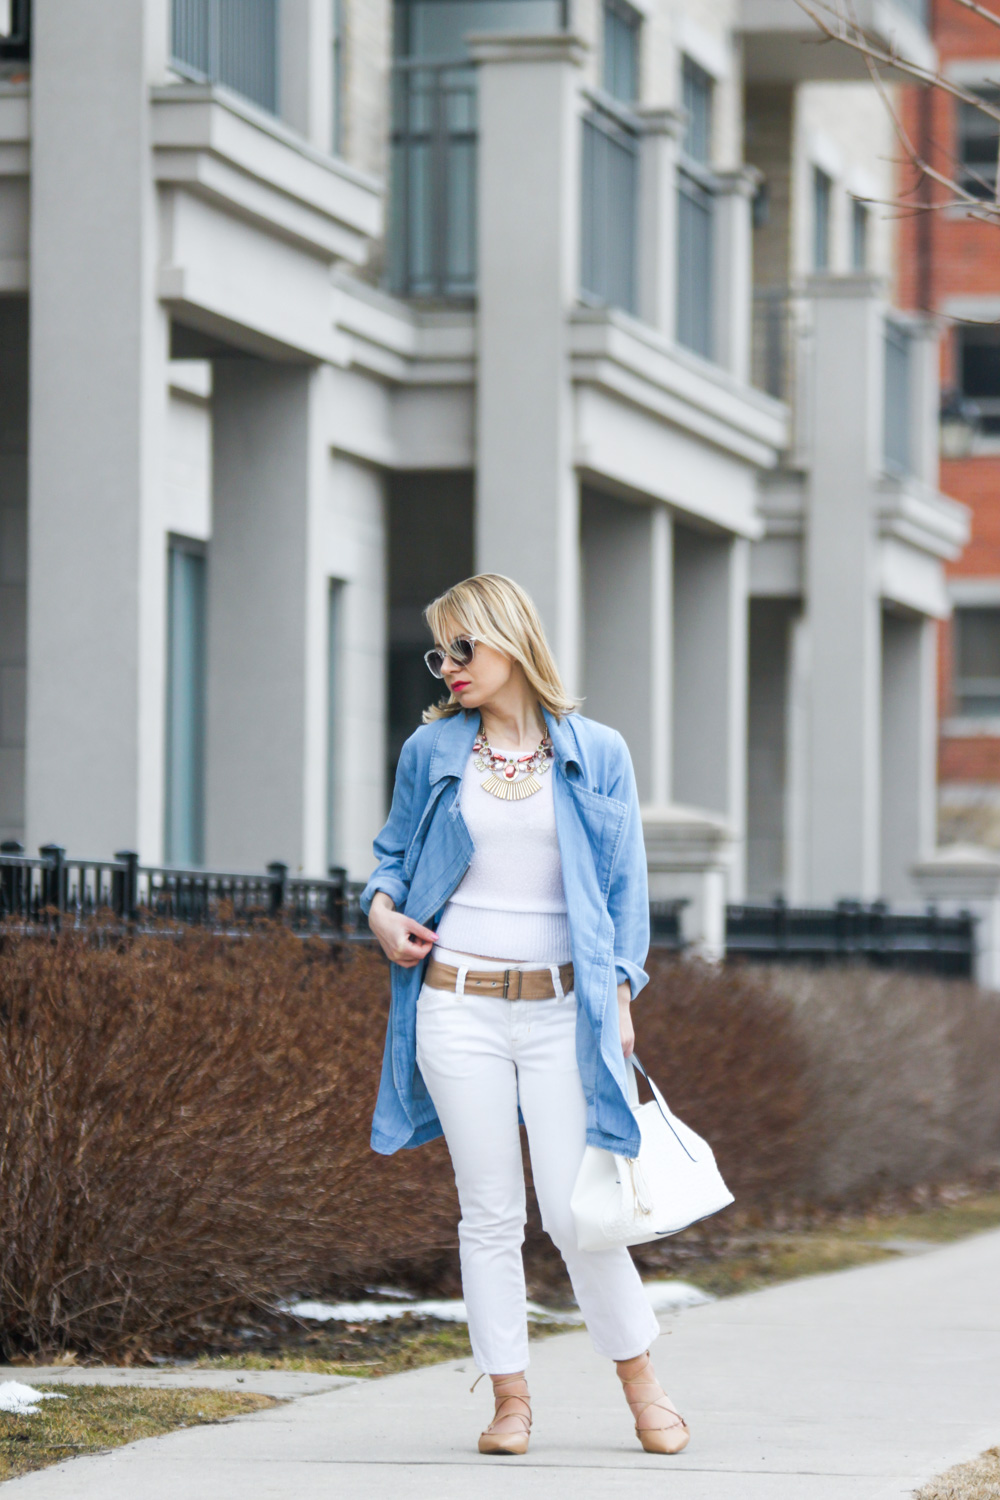 spring trends chambray waterfall jacket with cropped jeans and lace up ballet flats